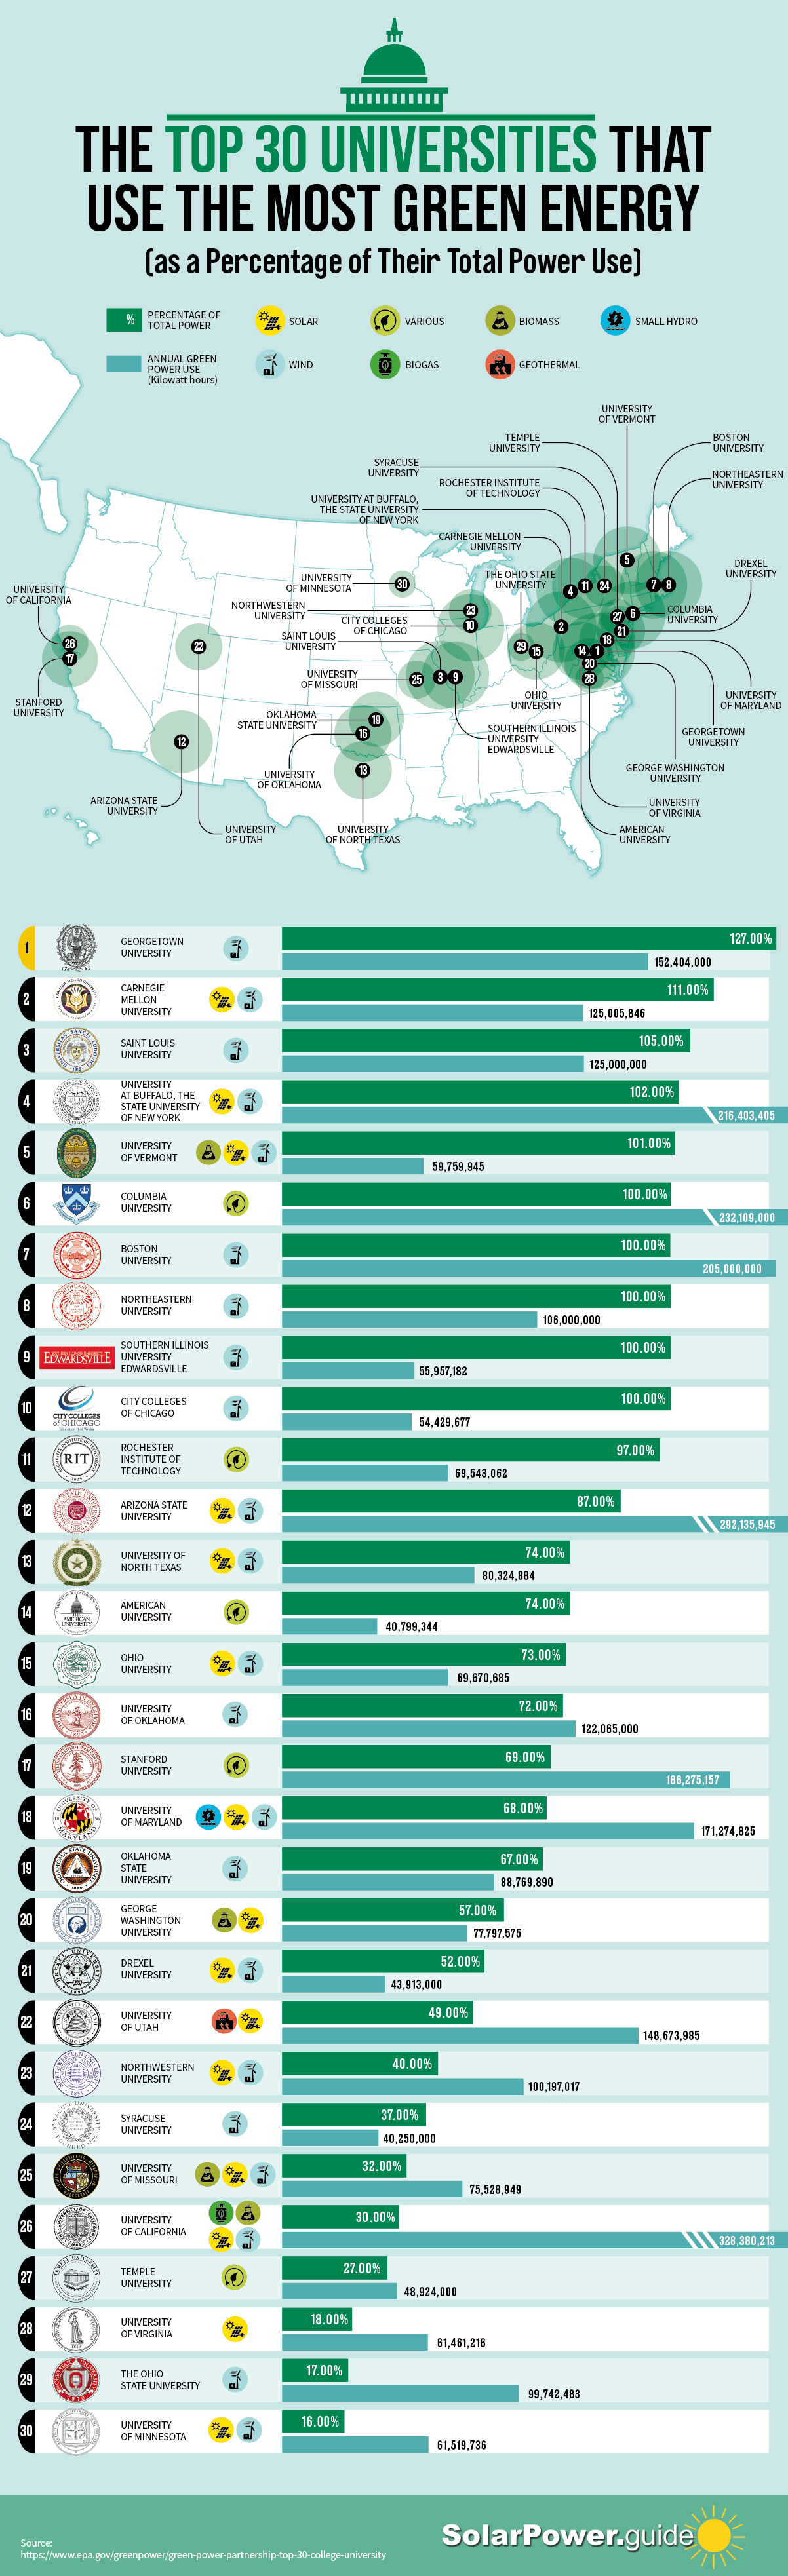 The Top 30 Colleges That Use the Most Green Energy as a Percentage of Their Total Energy Use